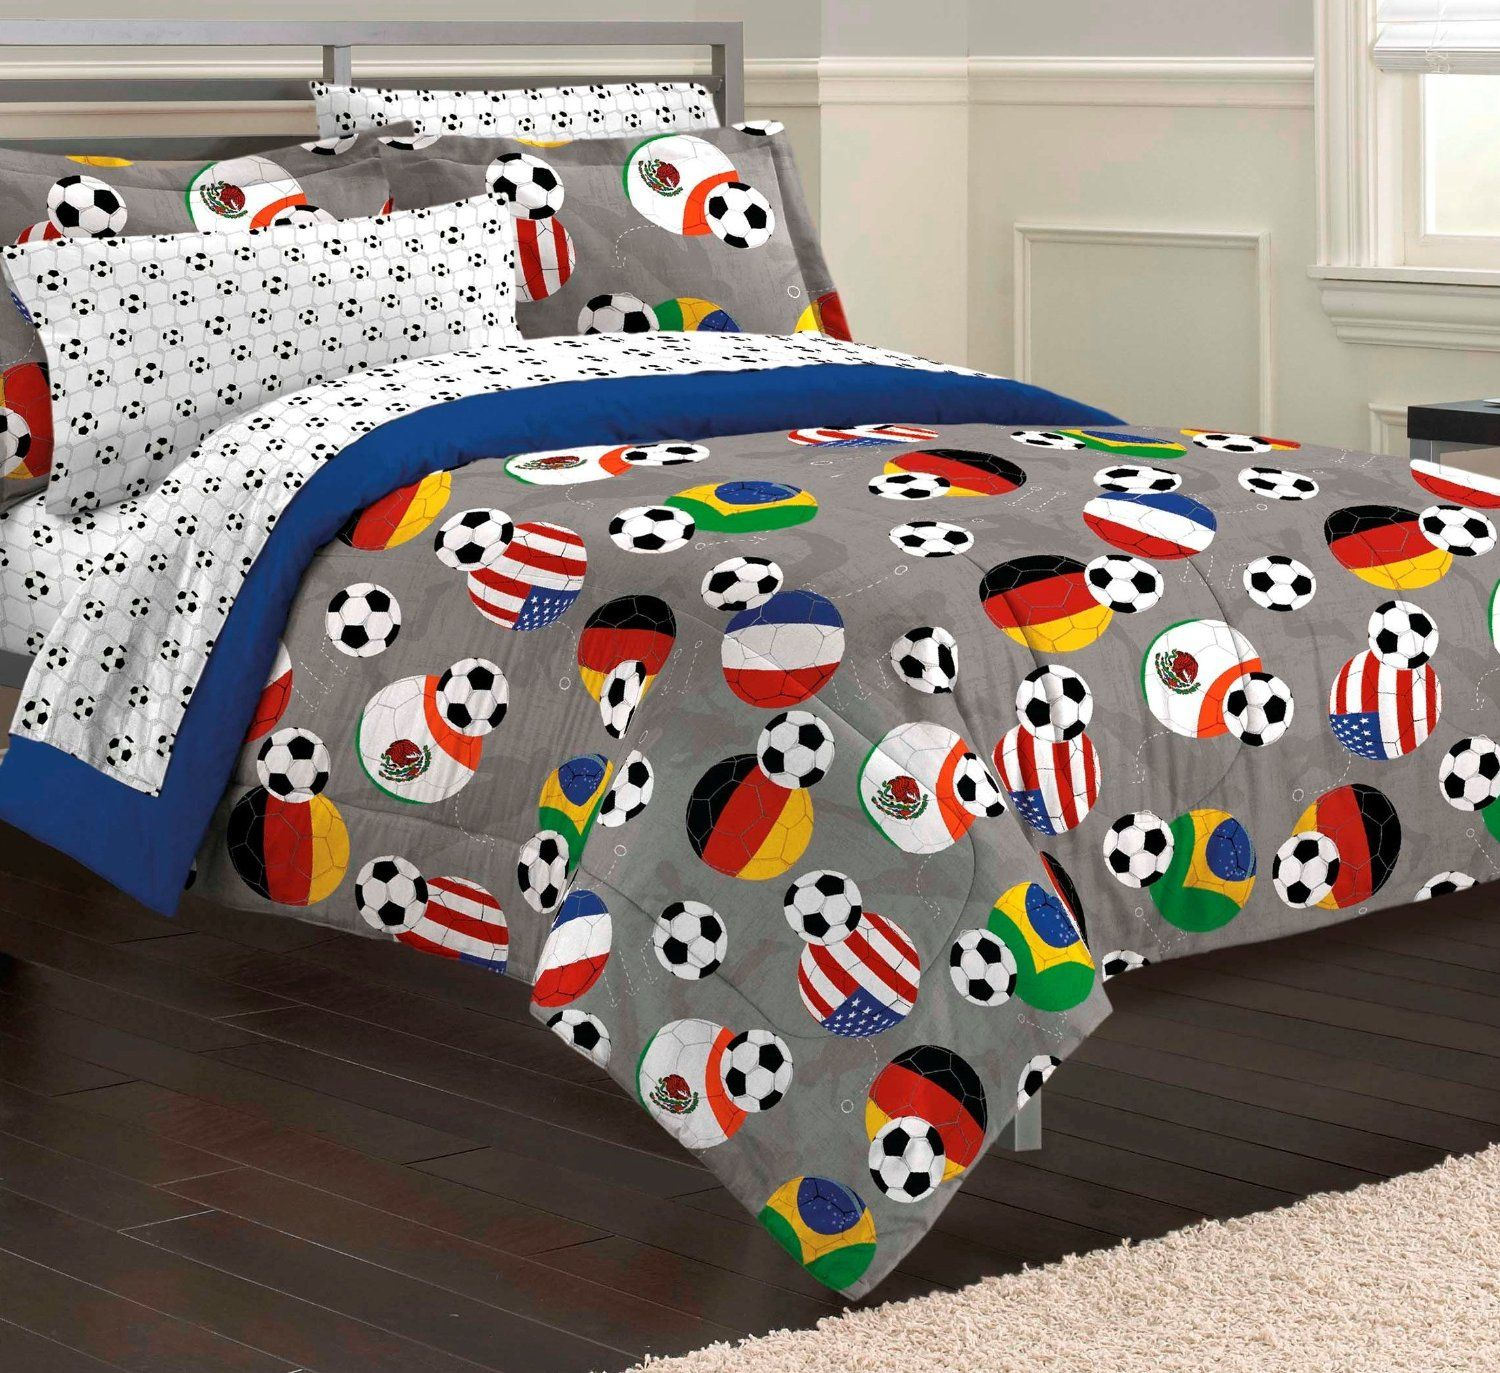 comforter masculine queen bag bed boys black houndstoothgray gray white boy teen p a eht in twin houndstooth set bedding